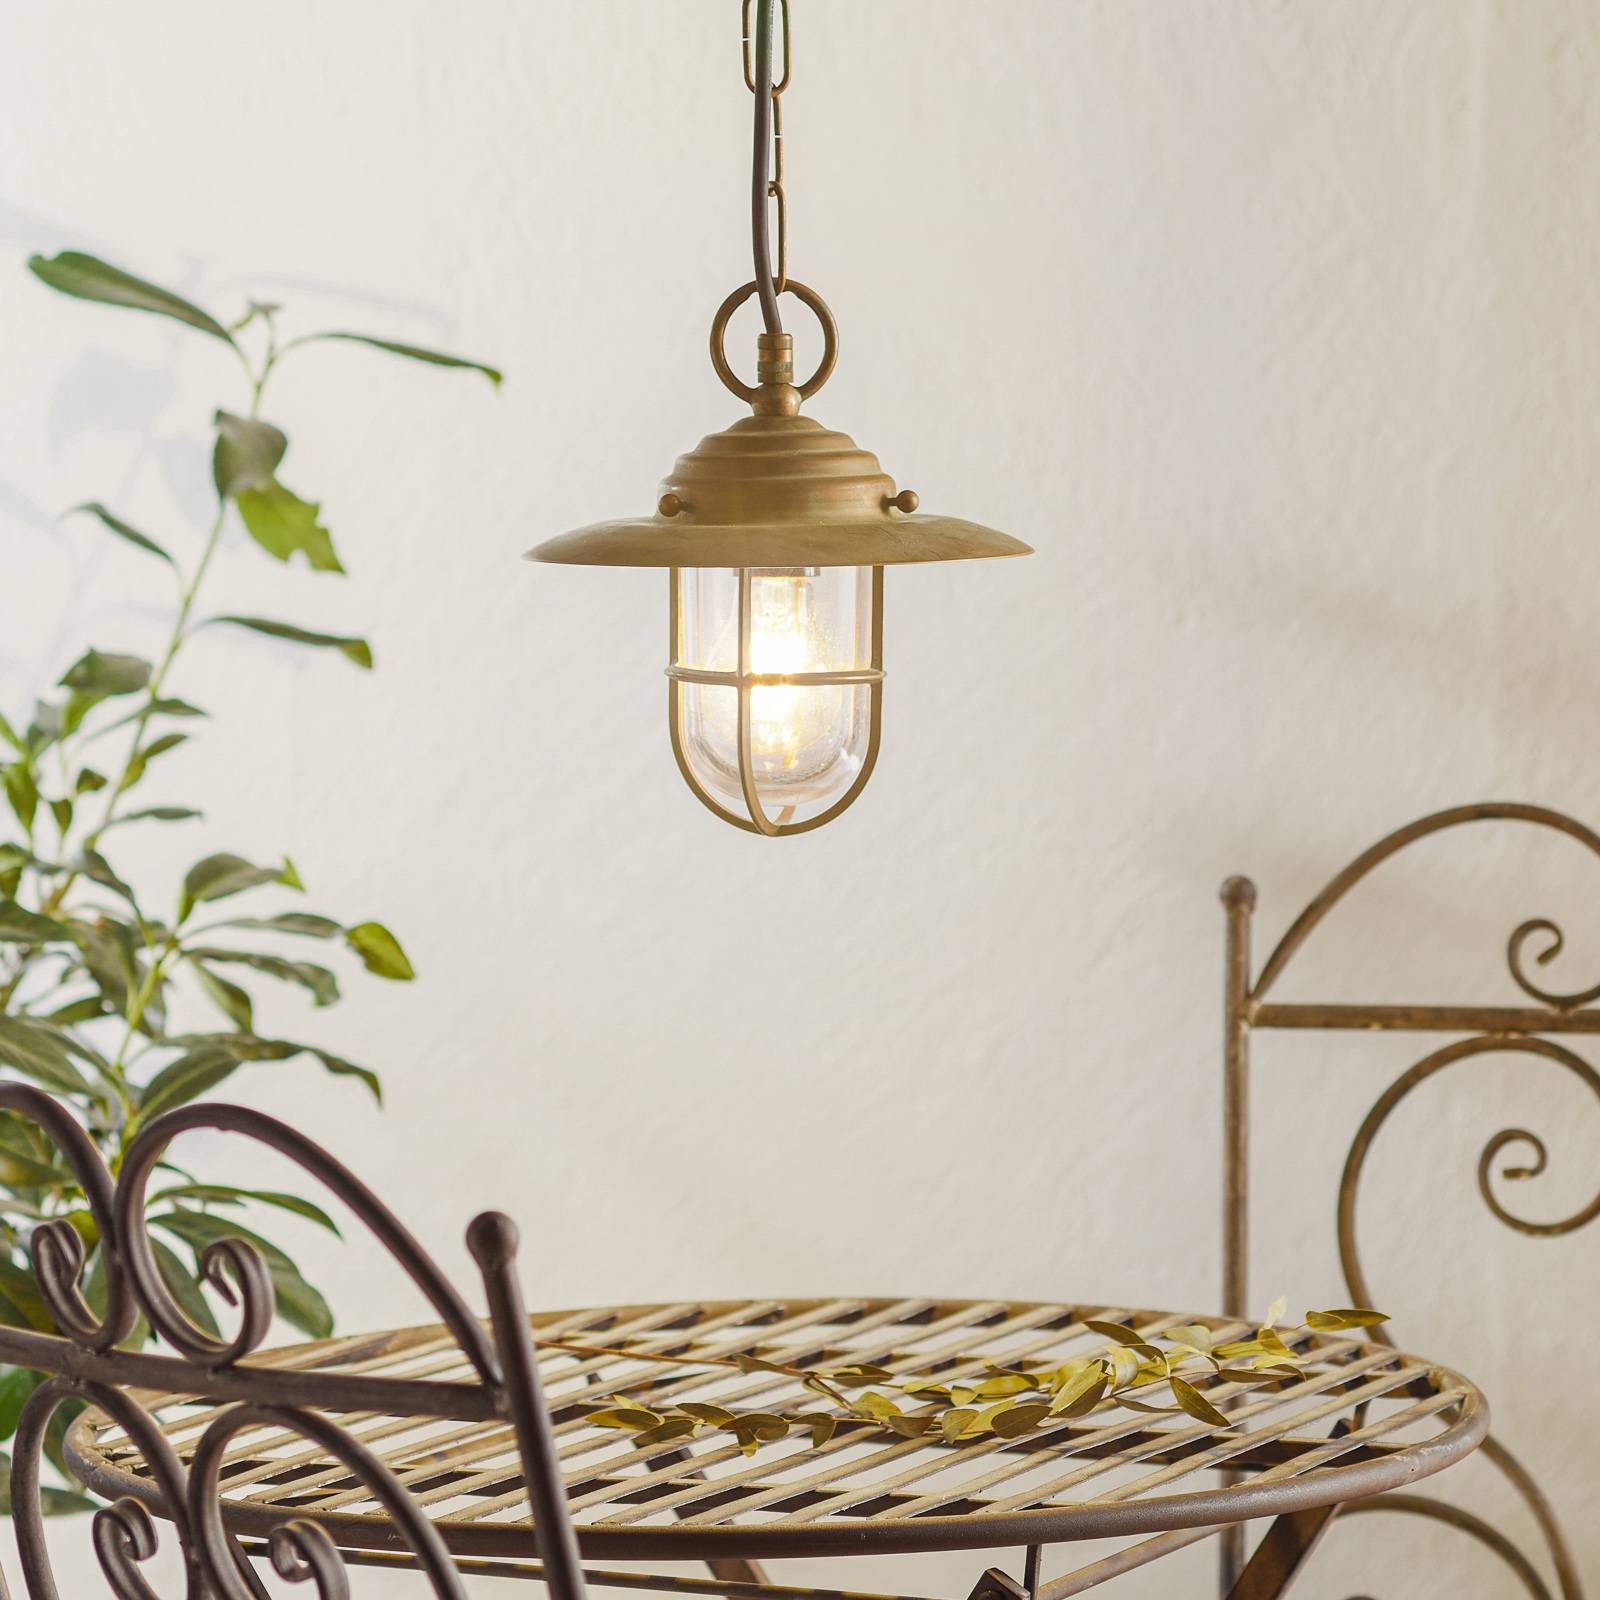 Bruno stylish hanging light for outdoors from Moretti